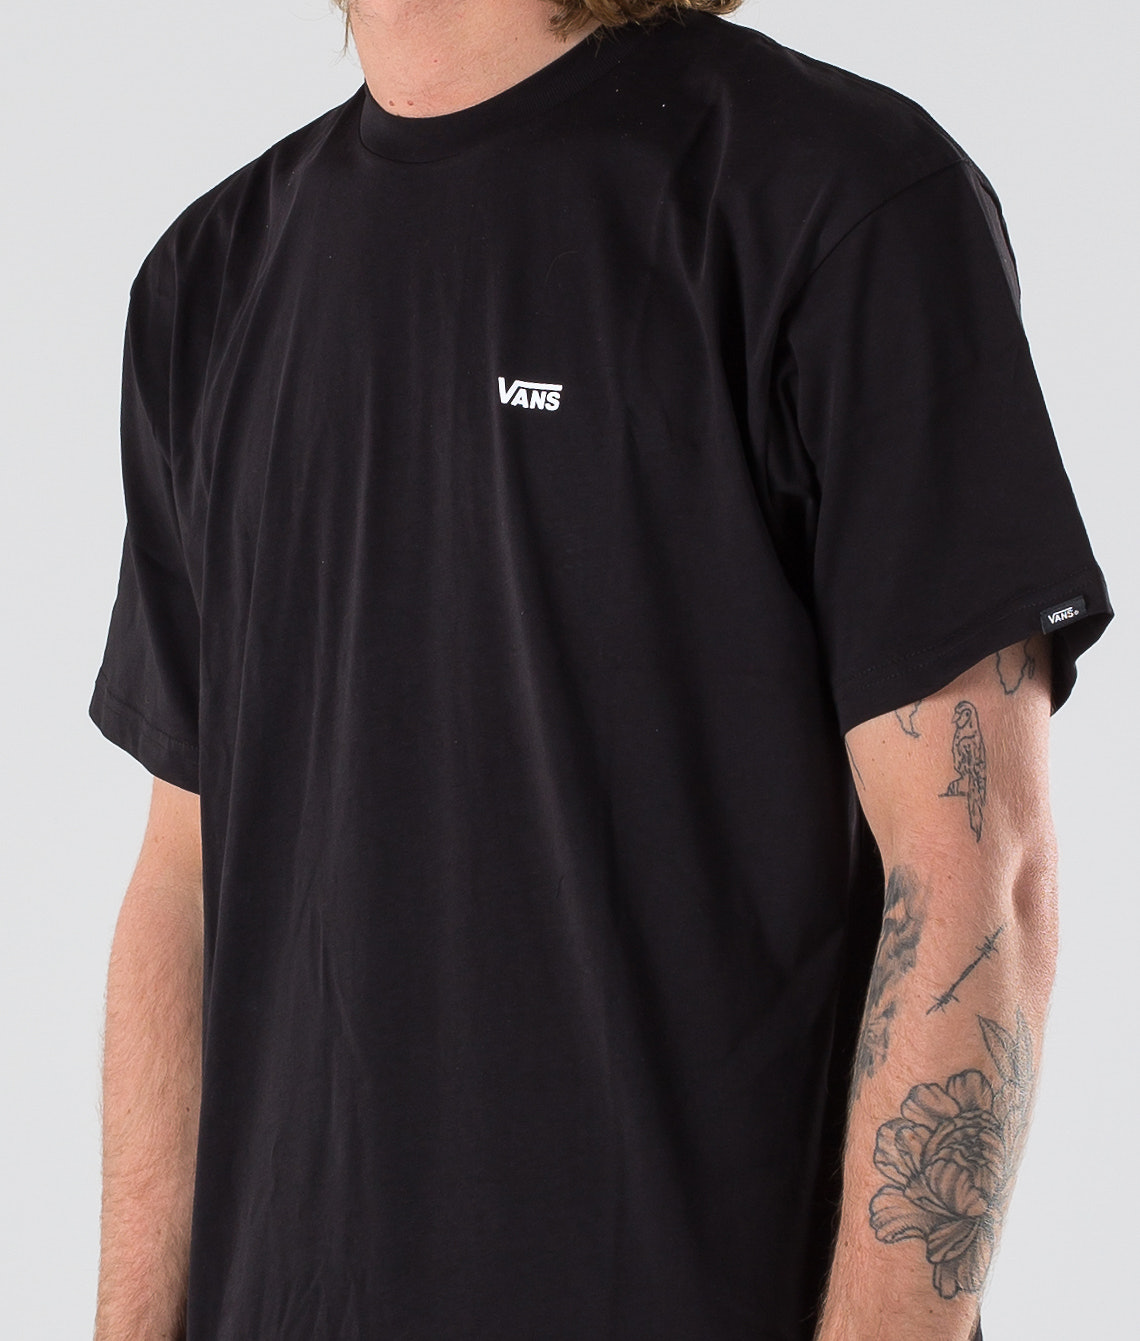 6ed1c5c8a695b1 Vans Left Chest Logo T-shirt Black/White - Ridestore.com